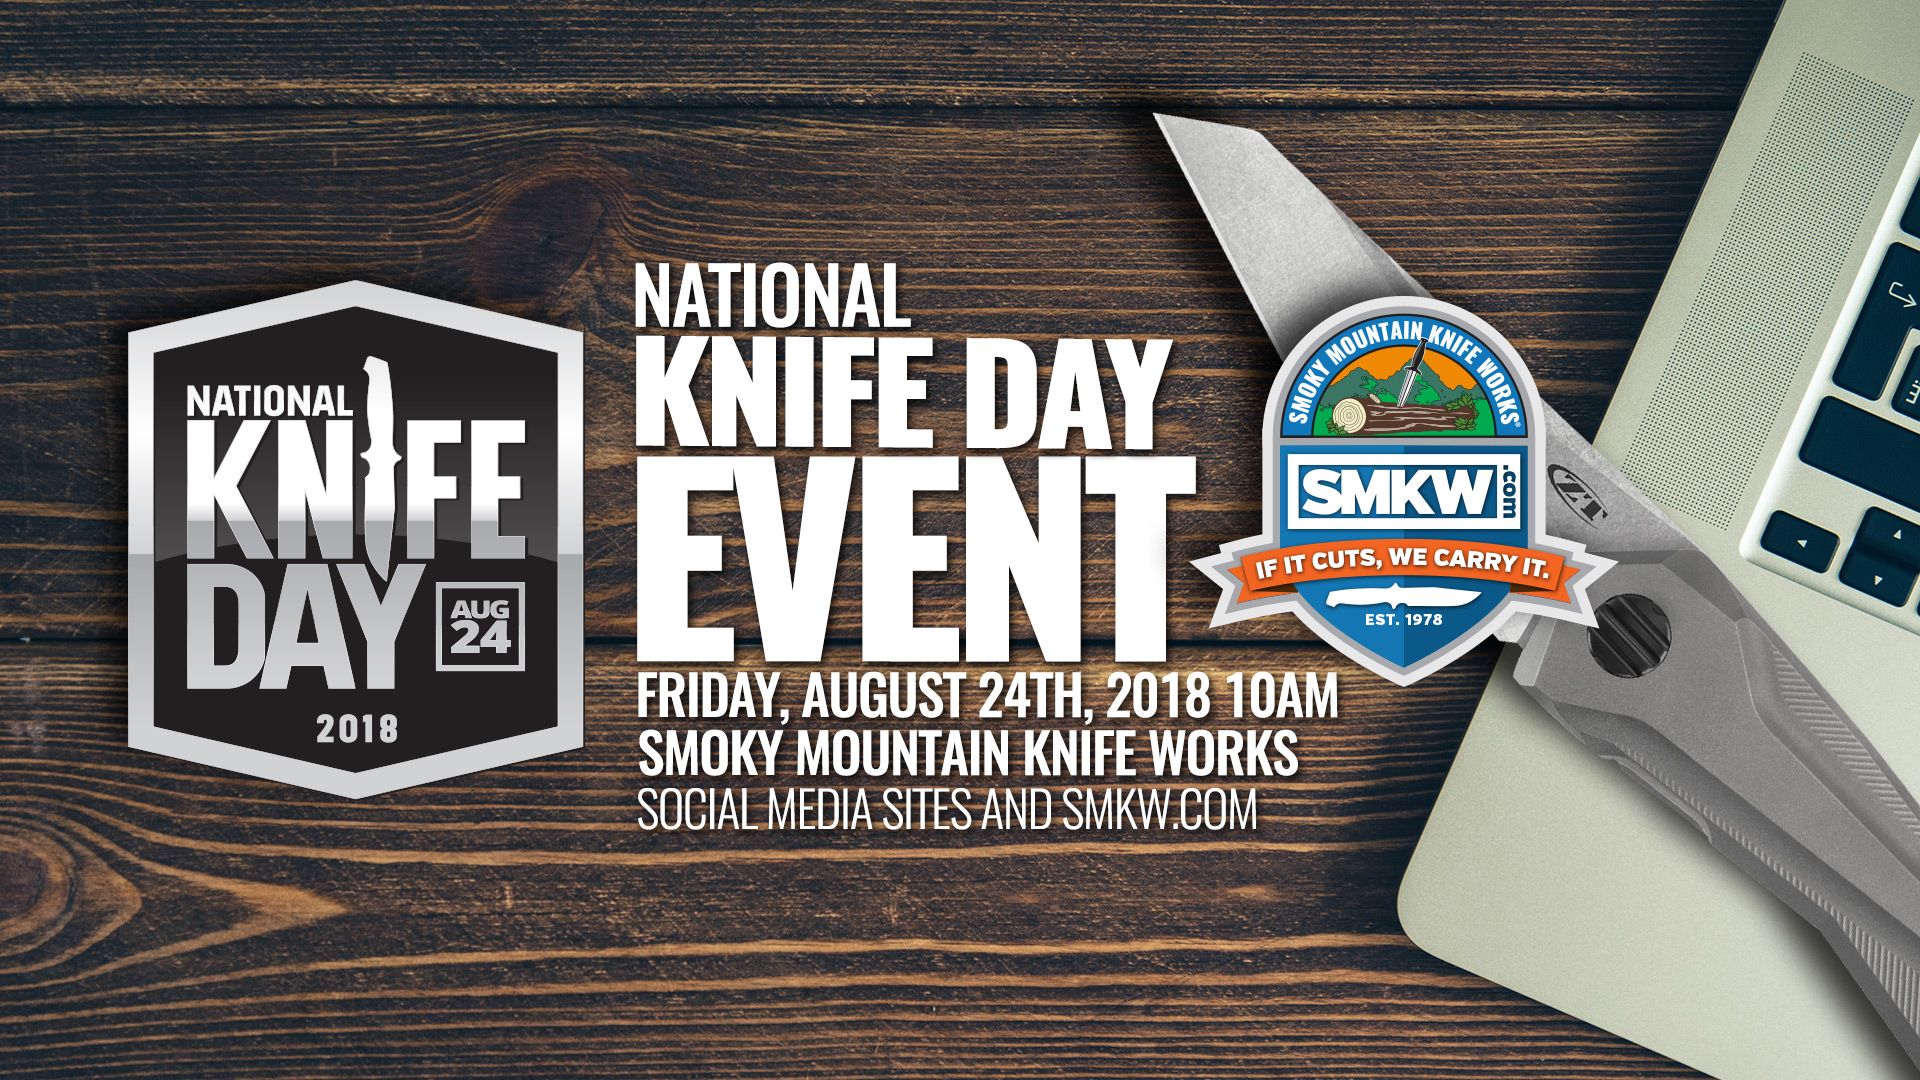 National Knife Day 2018